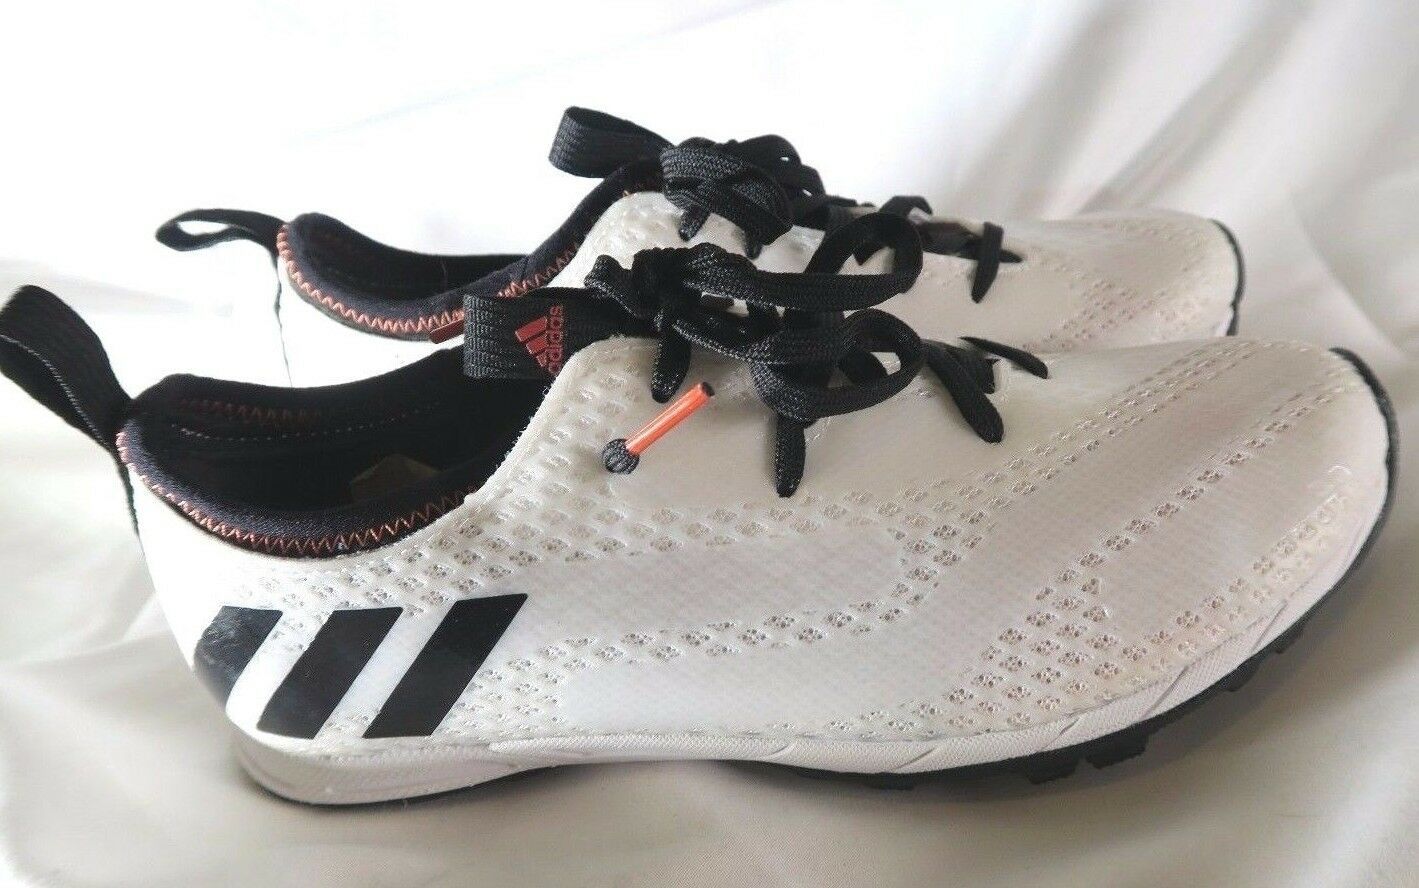 NOUVEAU Adidas XCS Trainer Chaussure Noir Blanc AQ2450 Taille 5 * NO SPIKE / WRENCH *